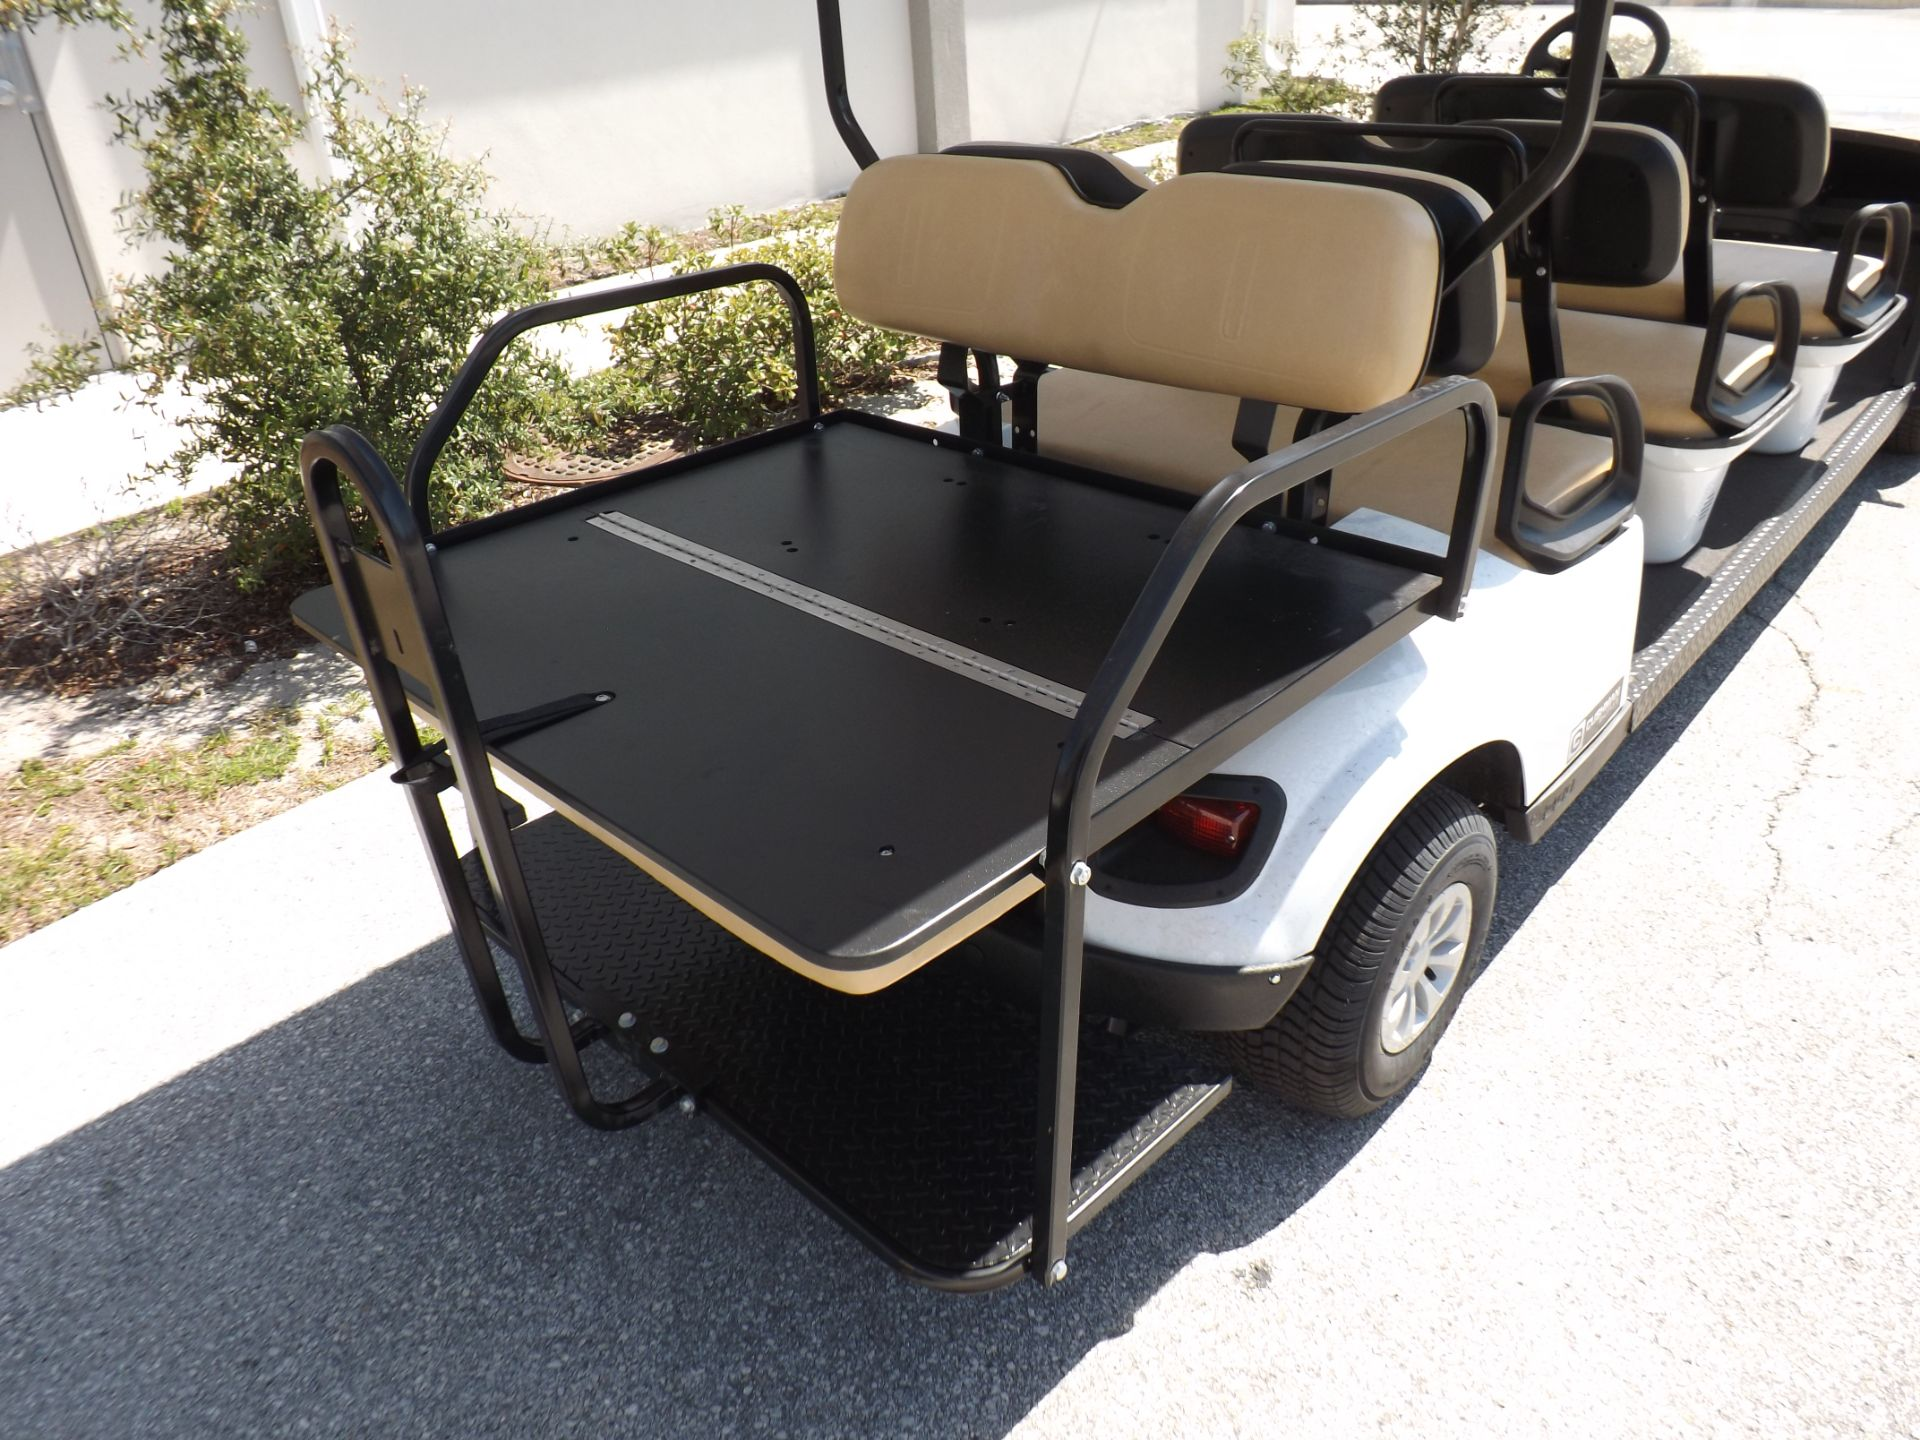 2019 Cushman Shuttle 8 EFI Gas in Lakeland, Florida - Photo 15